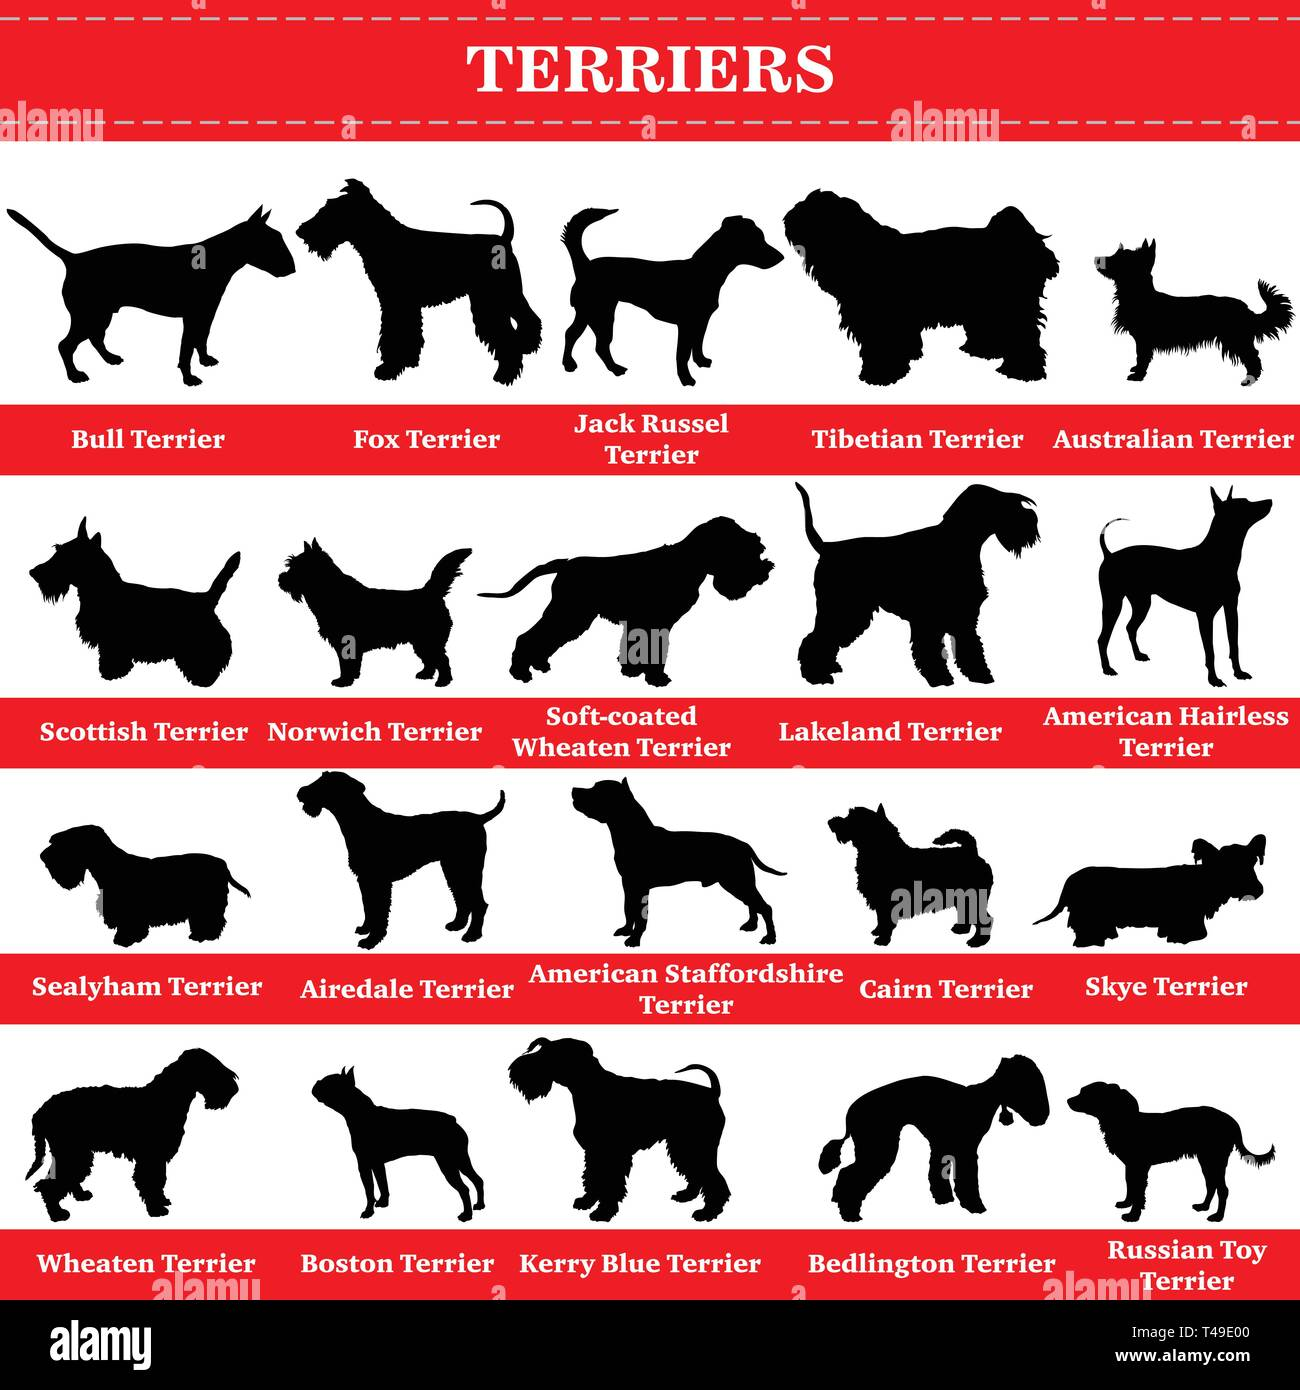 Set of 20 terrier dogs. Vector set of terrier breeds dogs standing in profile. Isolated dogs breed silhouettes set in black color on white background. - Stock Image